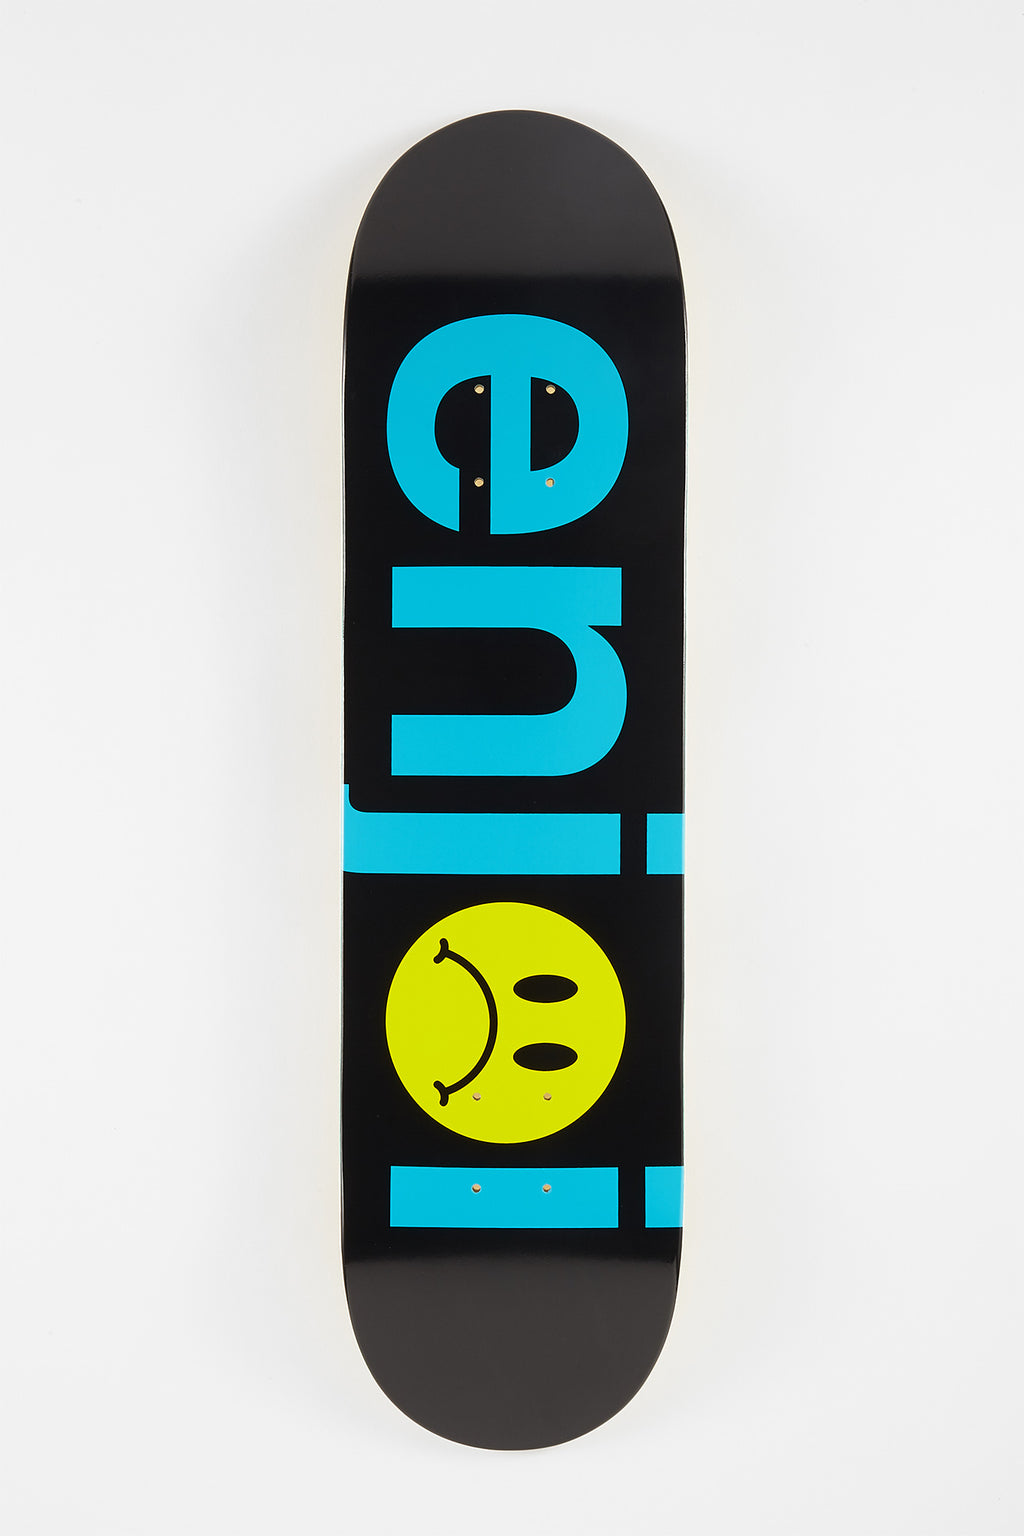 Enjoy Frown Face 8.0 Skateboard Deck